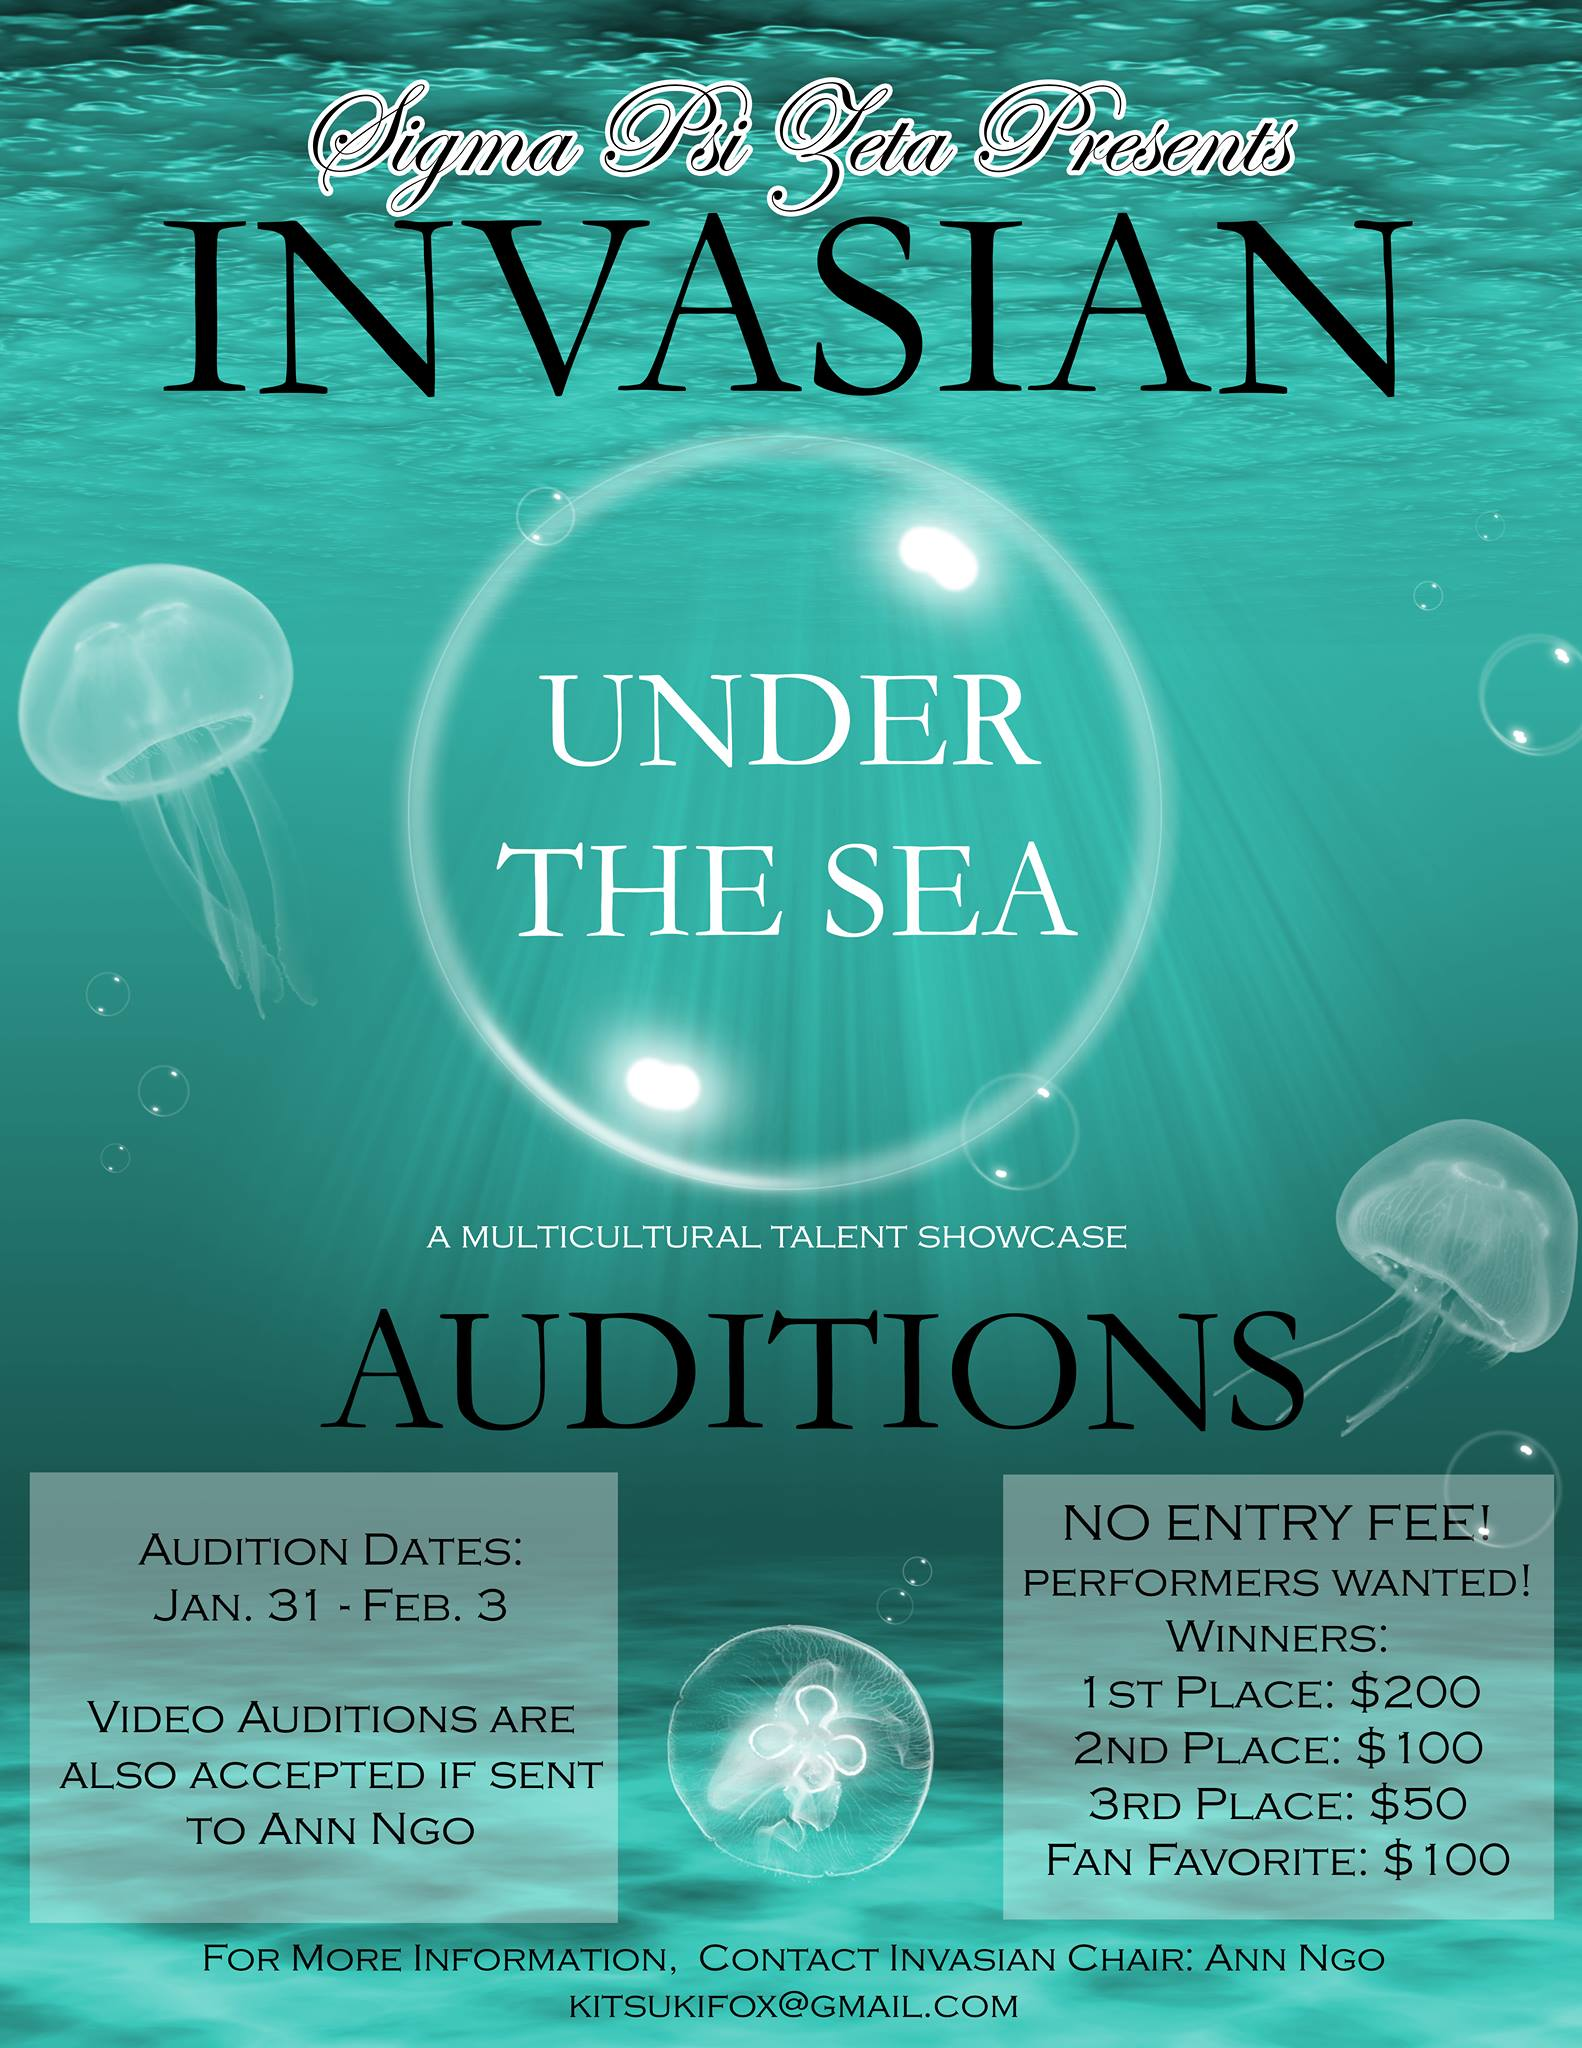 Audition application deadline: January 27th at 11:59 PM.